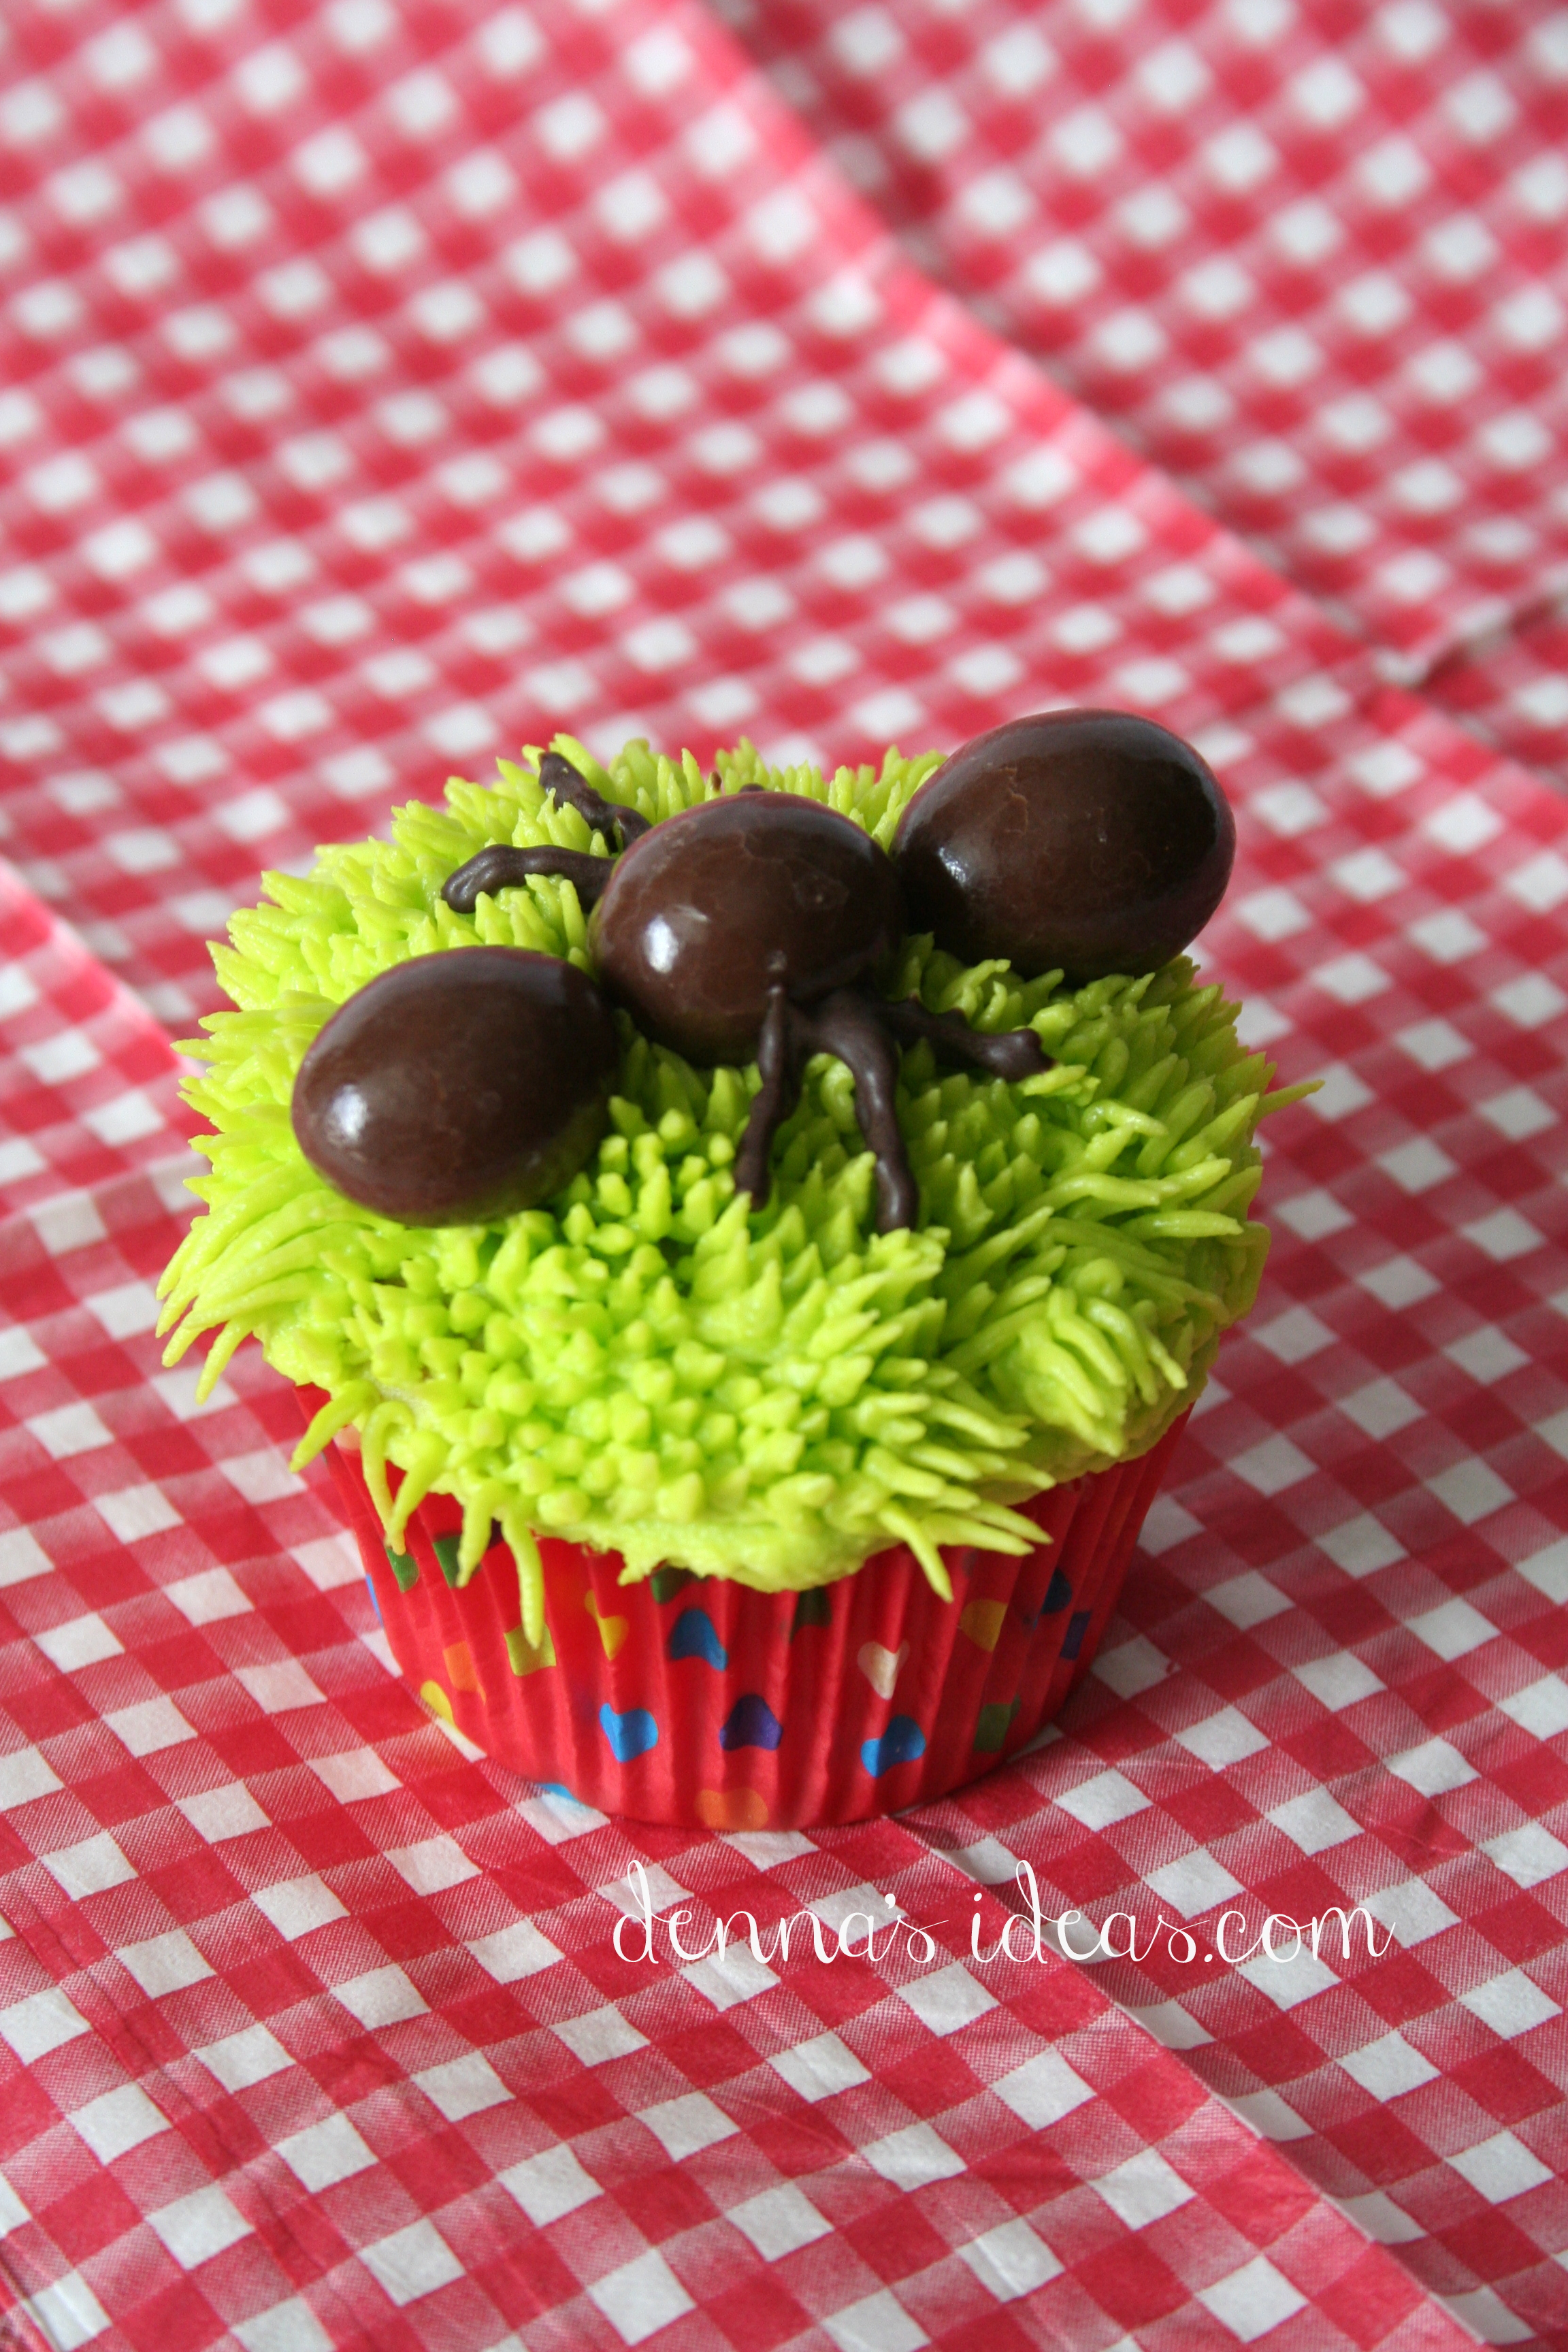 What to do with Chocolate Covered Almonds? | denna's ideas